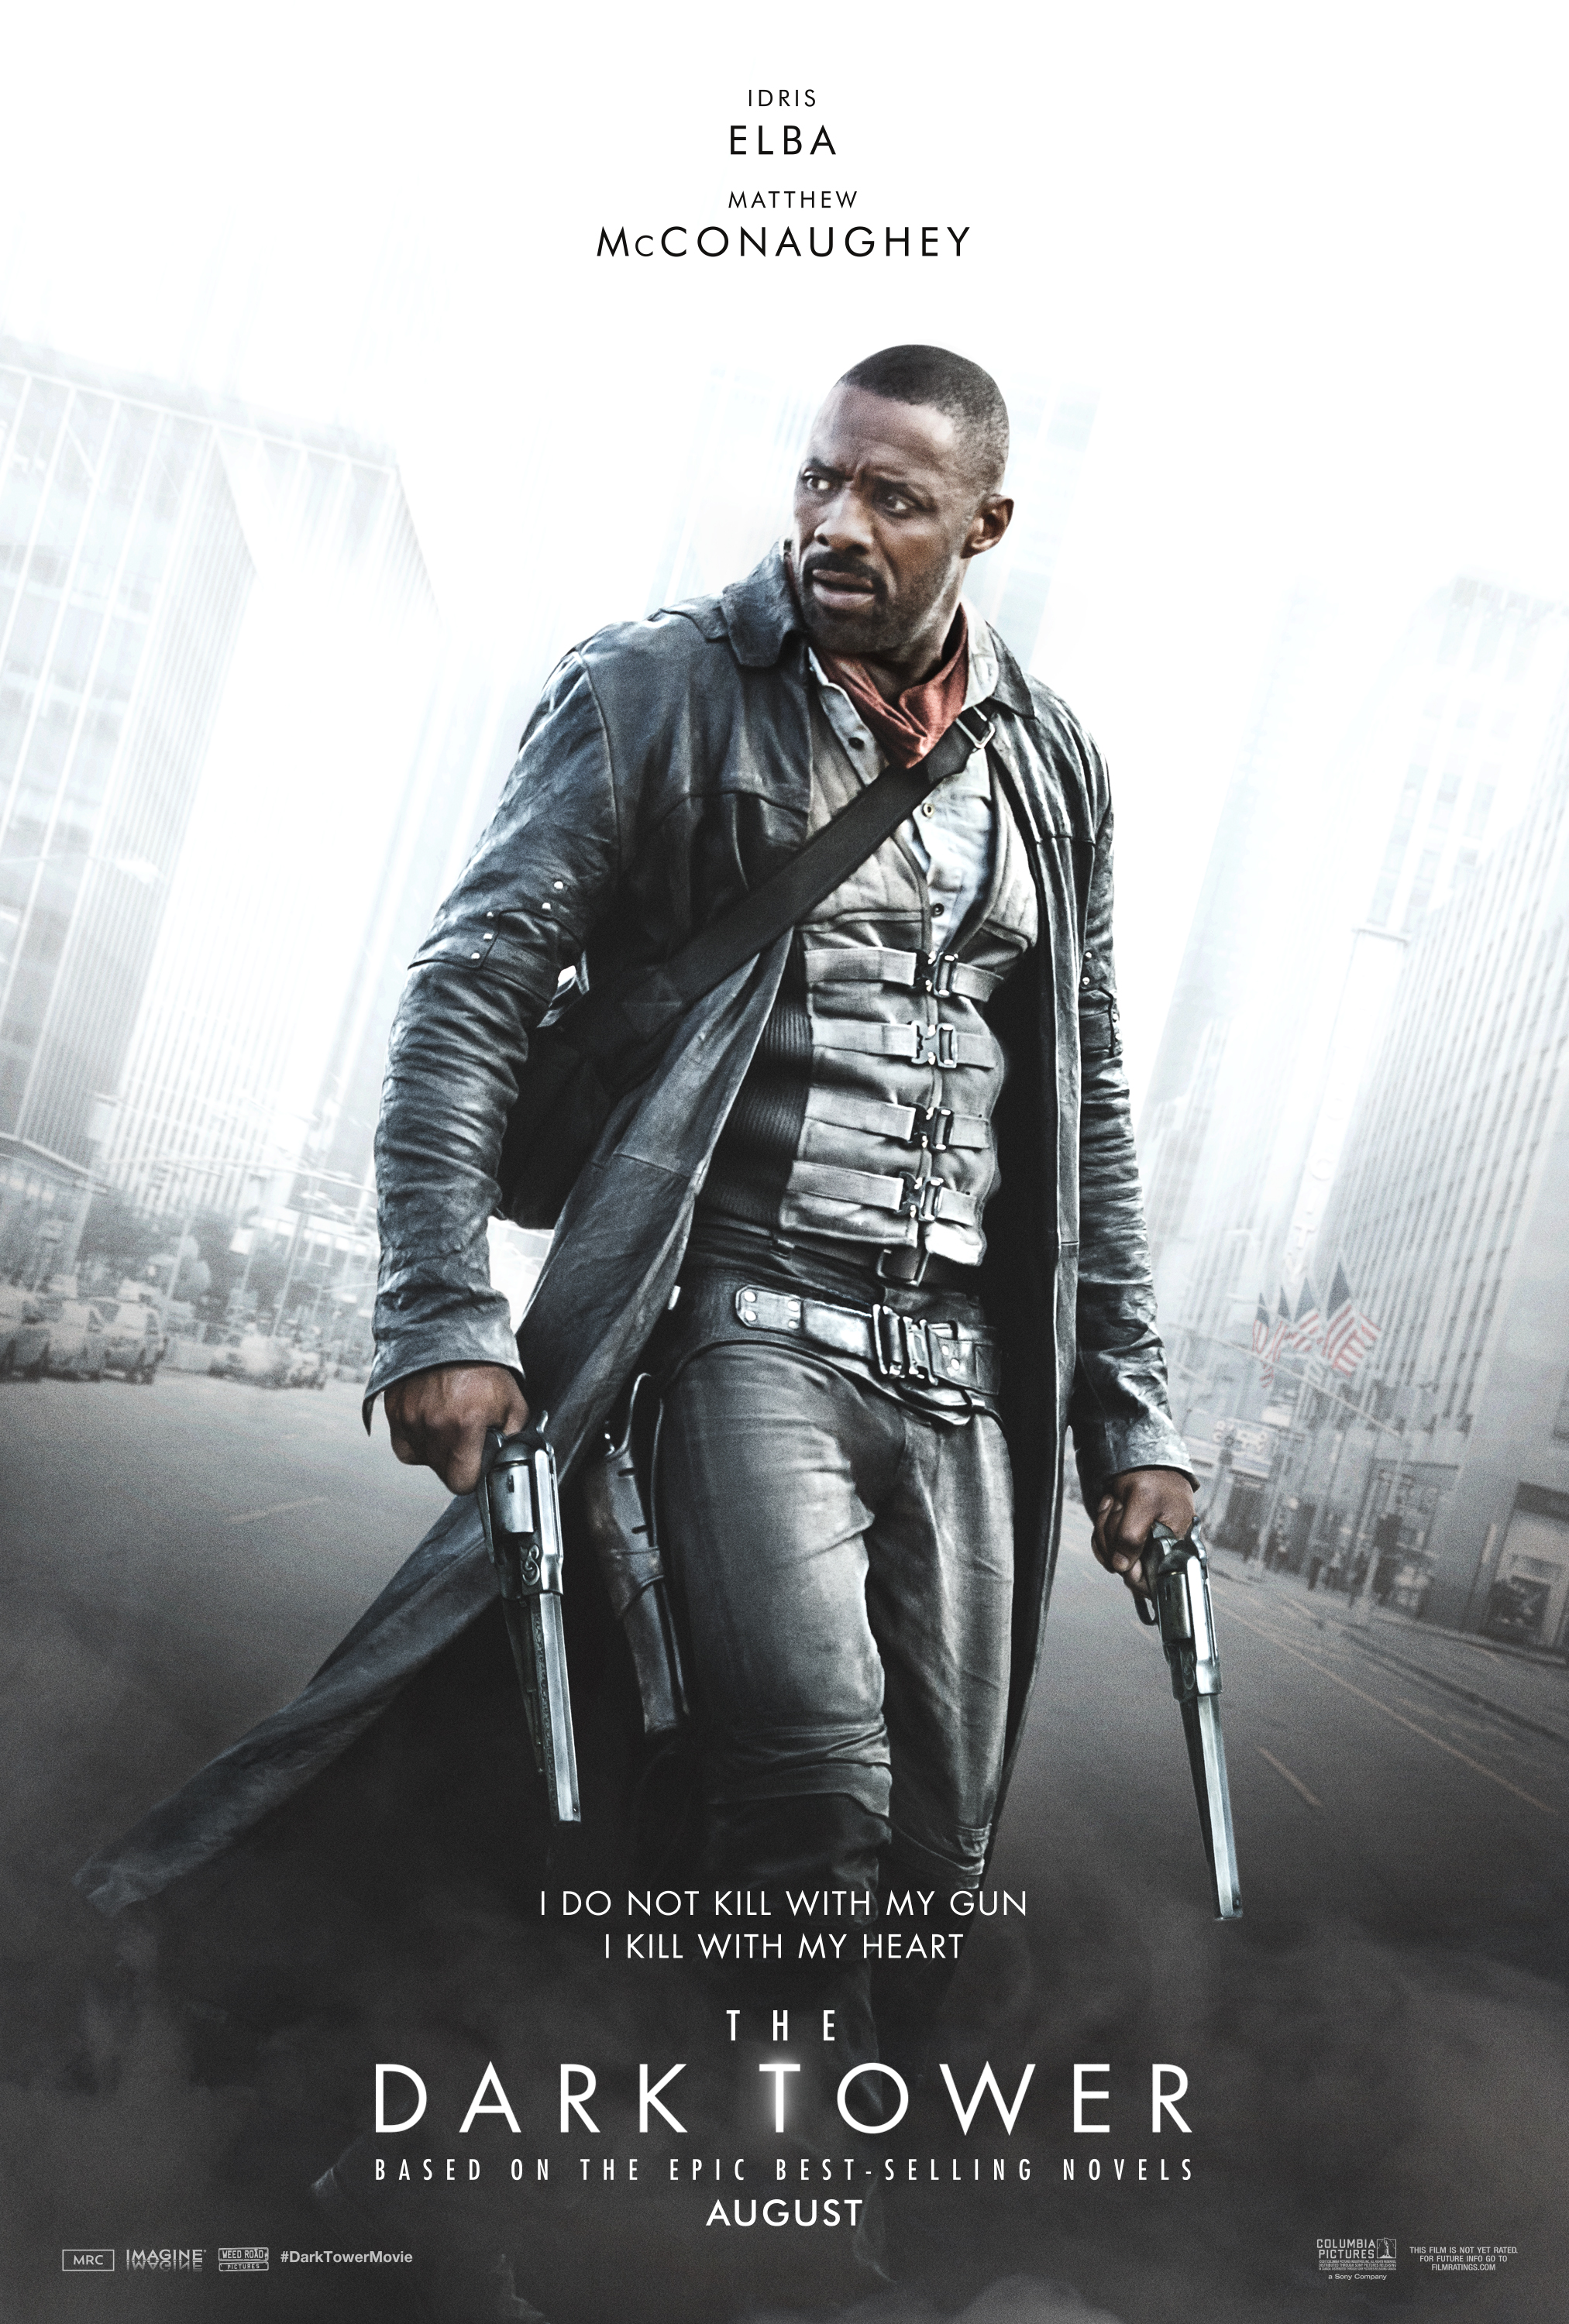 The Dark Tower (2017) - Directed by: Nikolaj ArcelStarring: Idris Elba, Matthew McConaughey, Tom TaylorRated: PG-13Running Time: 1h 35mTMM Score: 1.5 out of 5STRENGTHS: Idris ElbaWEAKNESSES: Everything Else